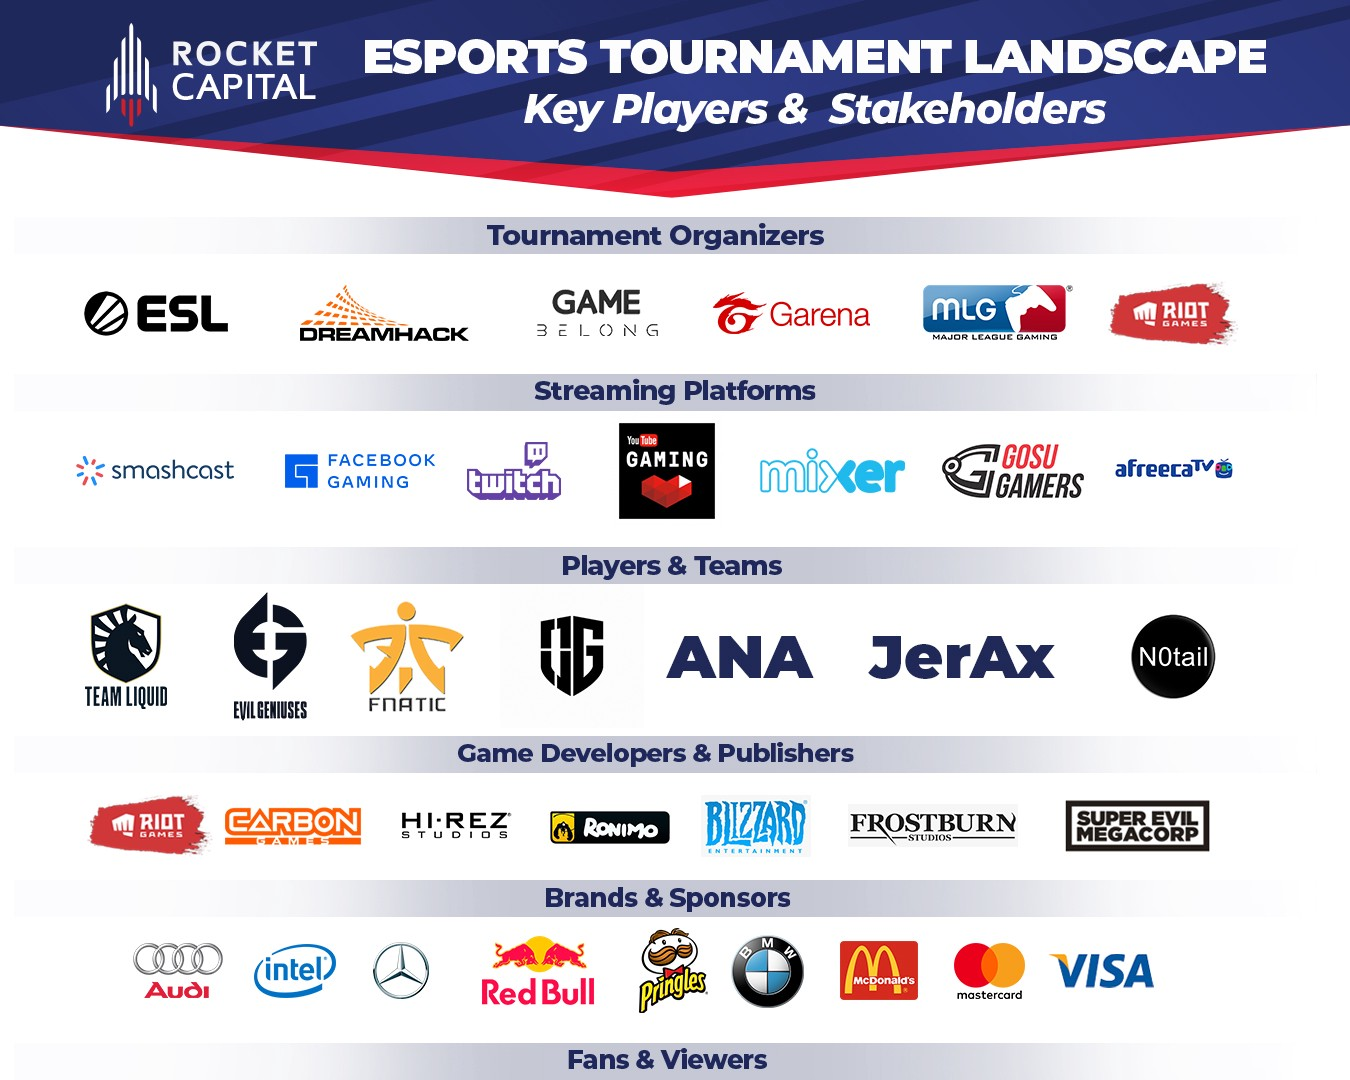 Rocket Capital Esports and Gaming Tournament landscape key players & stakeholders